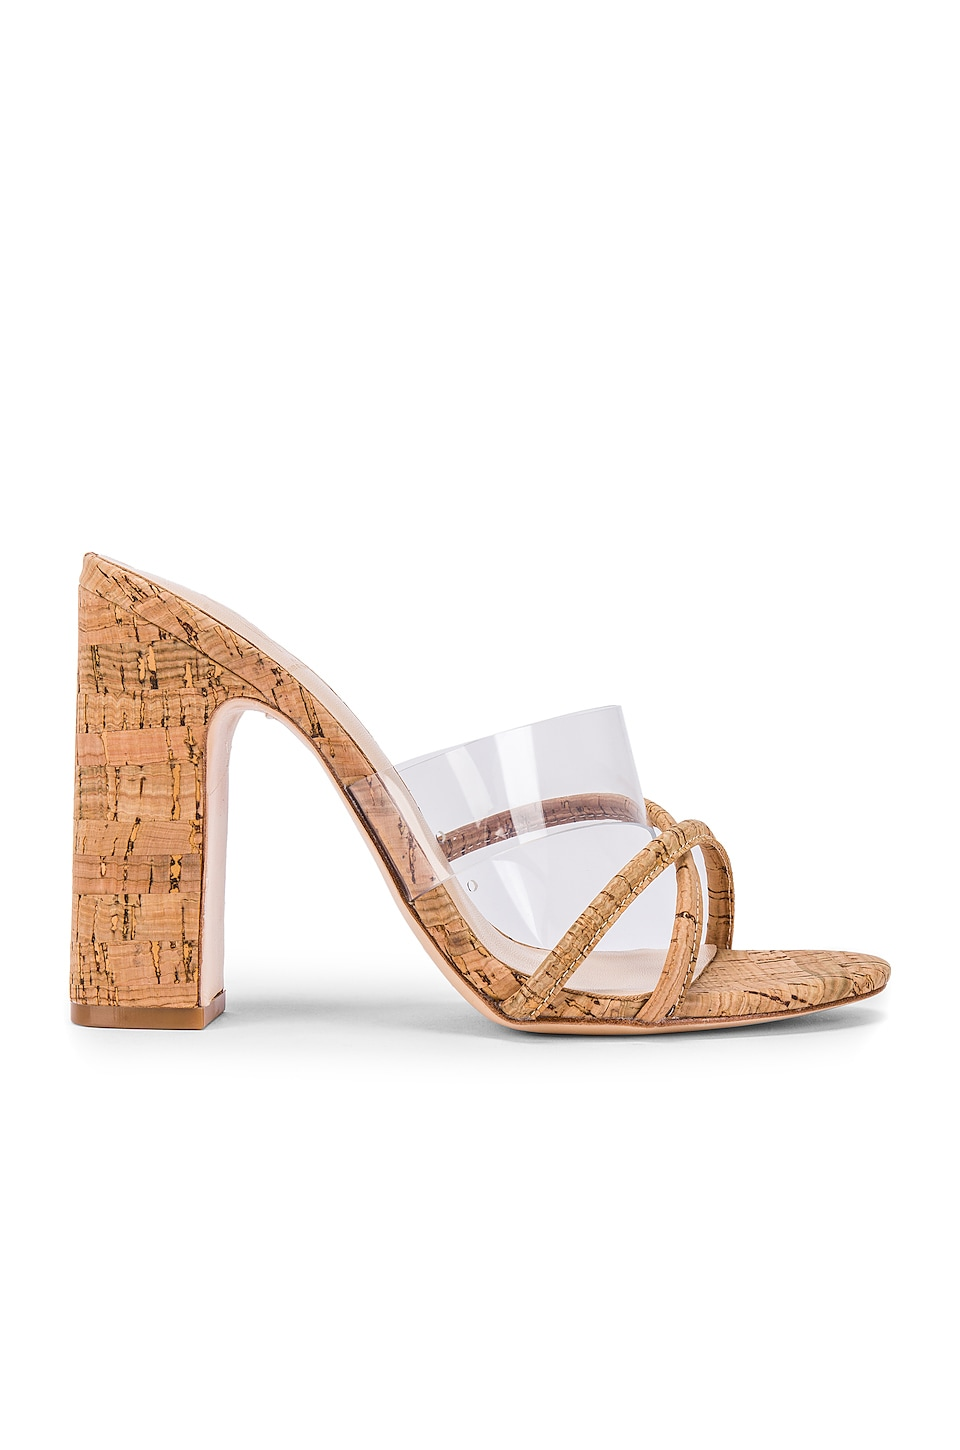 House of Harlow 1960 X REVOLVE Sasha Heel in Natural Cork